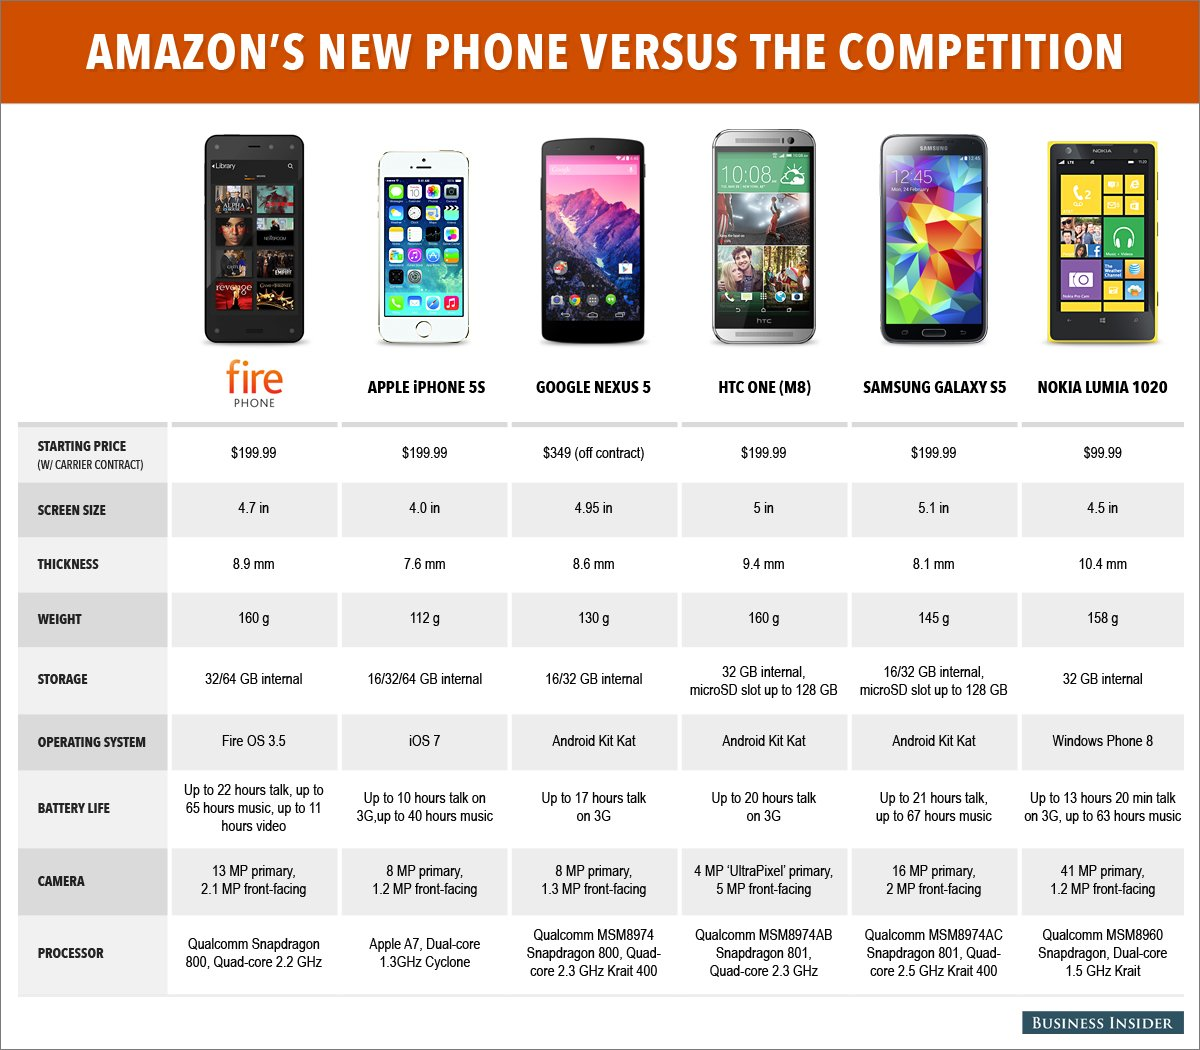 Photo of Fire Phone vs. iPhone 5s vs. Nexus 5 vs. HTC One vs. Galaxy S5 vs. Lumia 1020